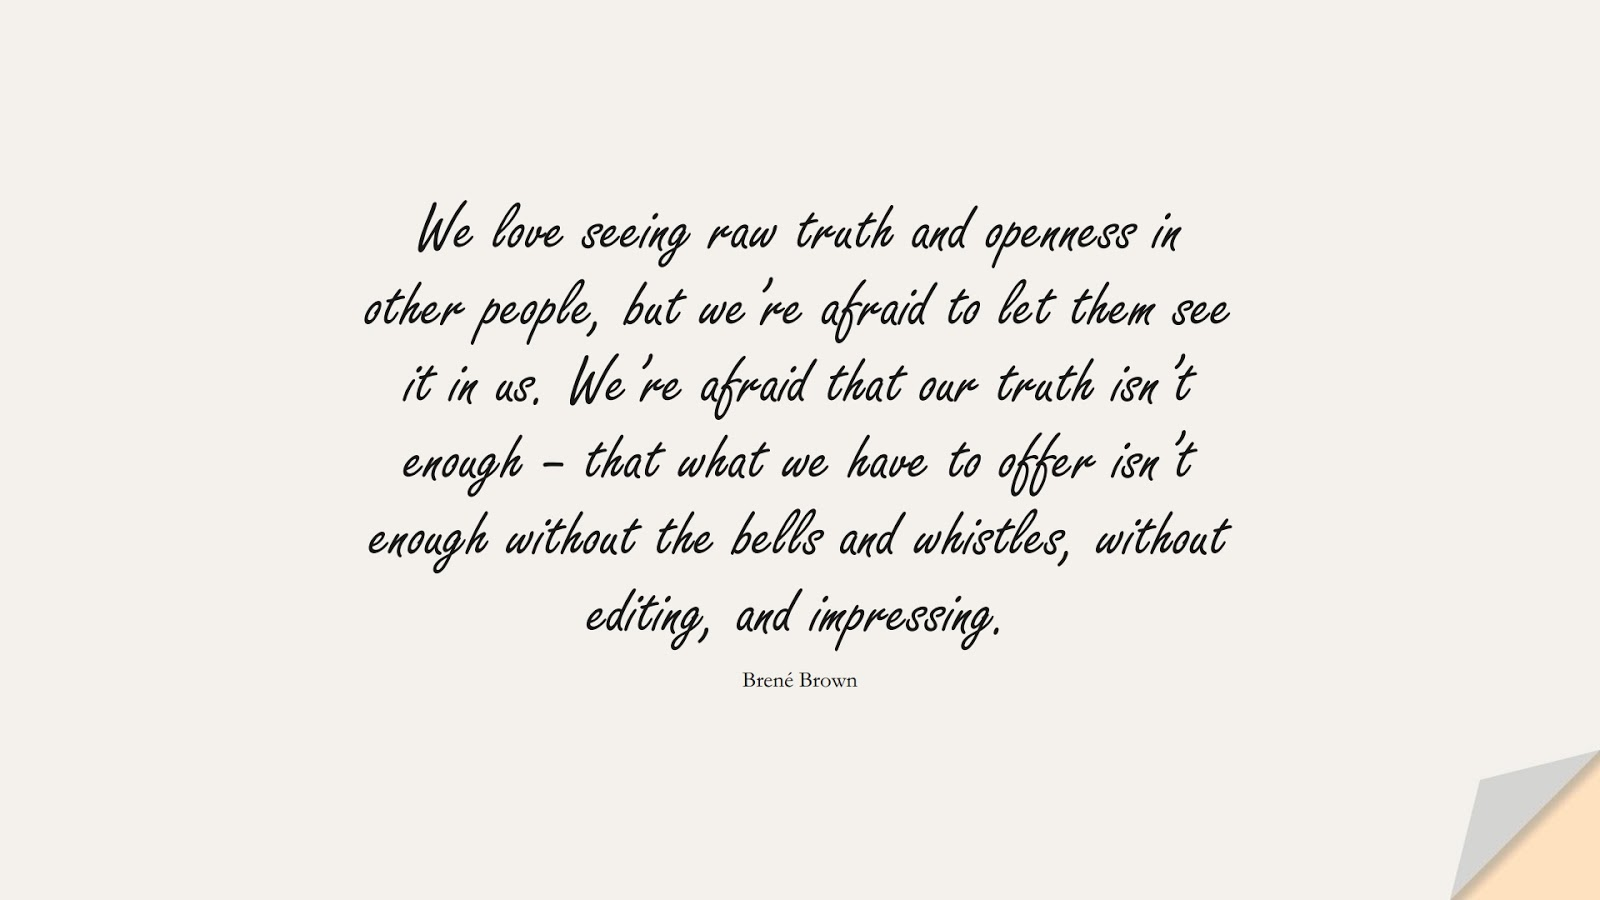 We love seeing raw truth and openness in other people, but we're afraid to let them see it in us. We're afraid that our truth isn't enough – that what we have to offer isn't enough without the bells and whistles, without editing, and impressing. (Brené Brown);  #SelfEsteemQuotes